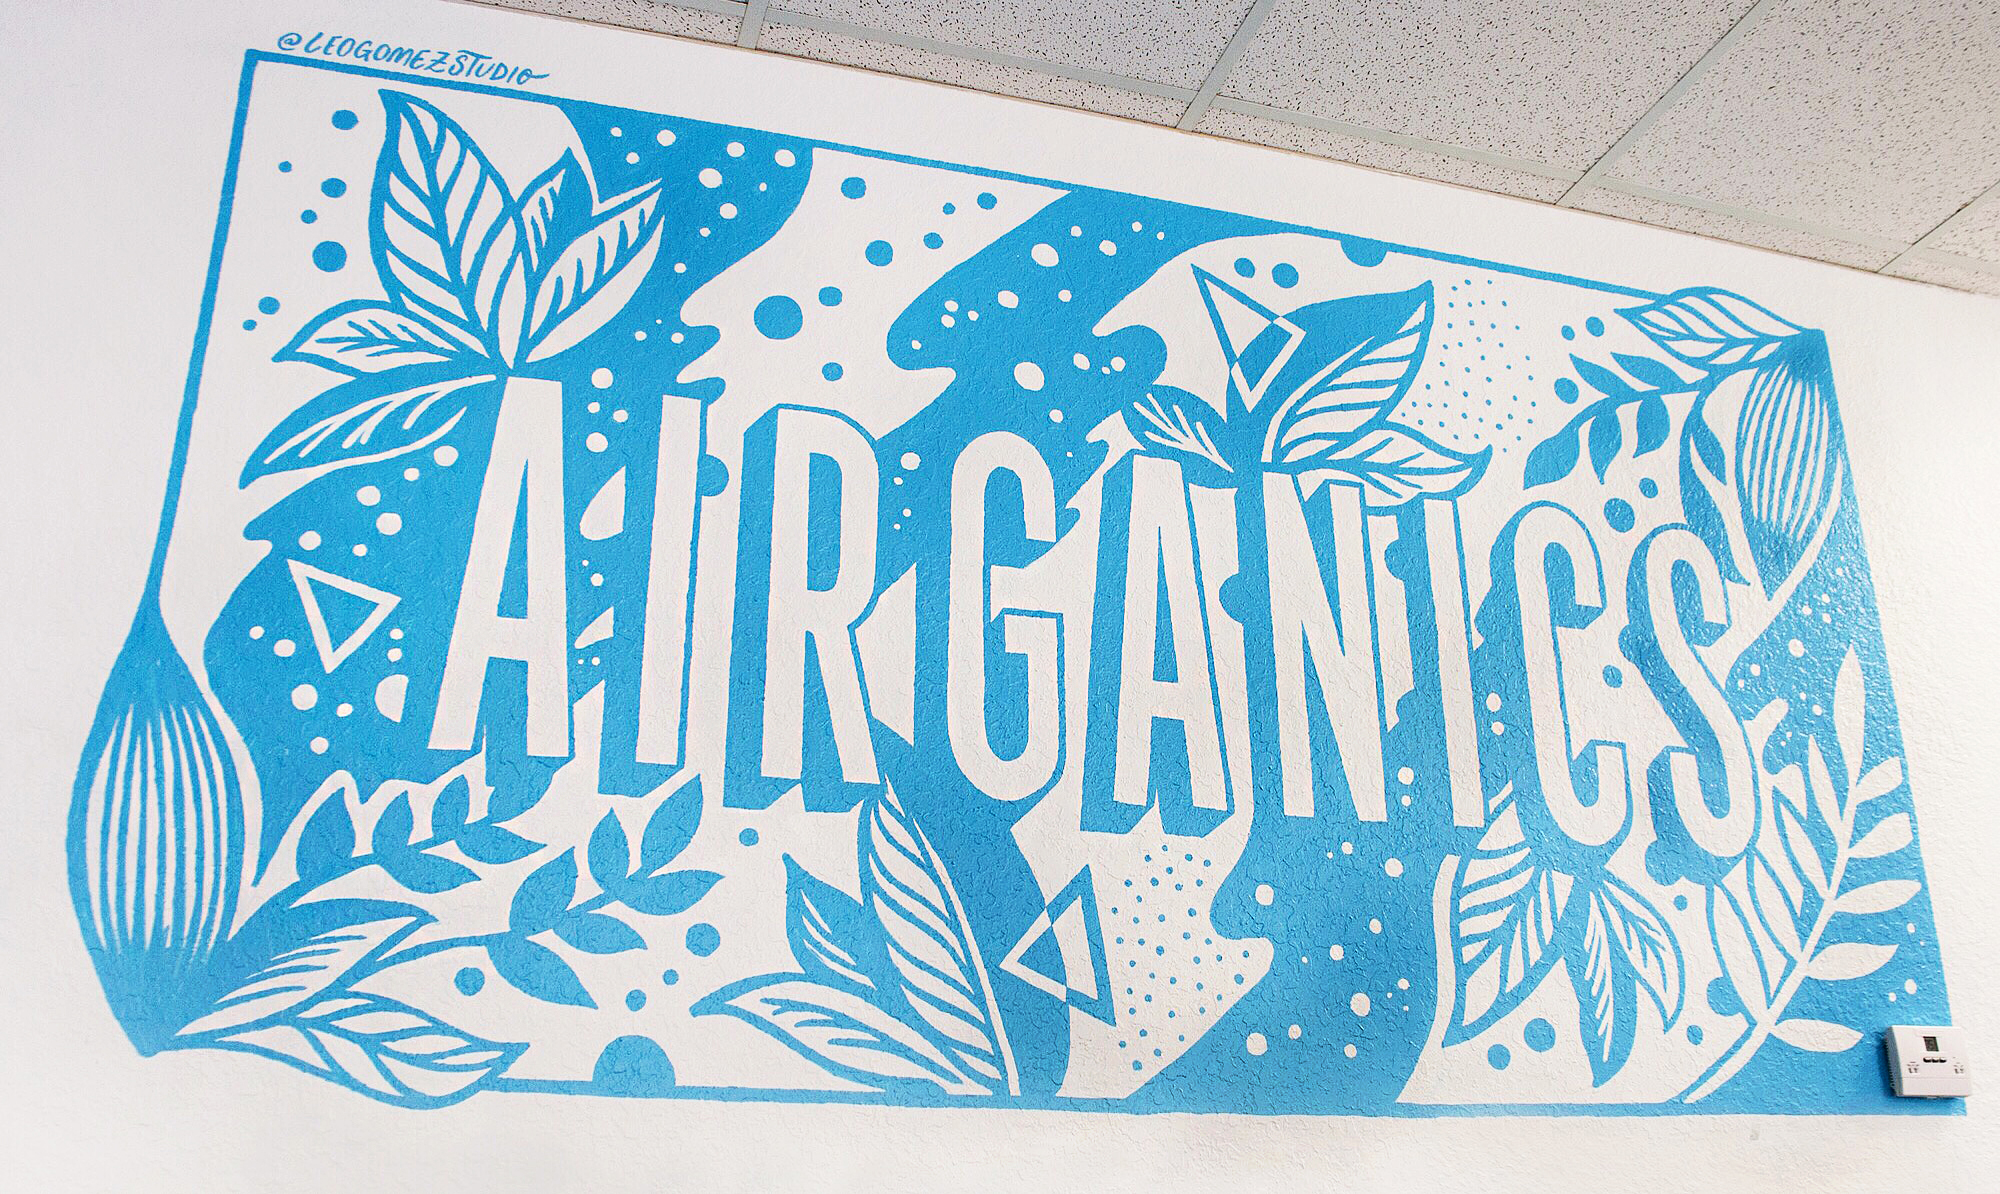 Leo-Gomez-Studio-Airganics-Office-Mural.jpg